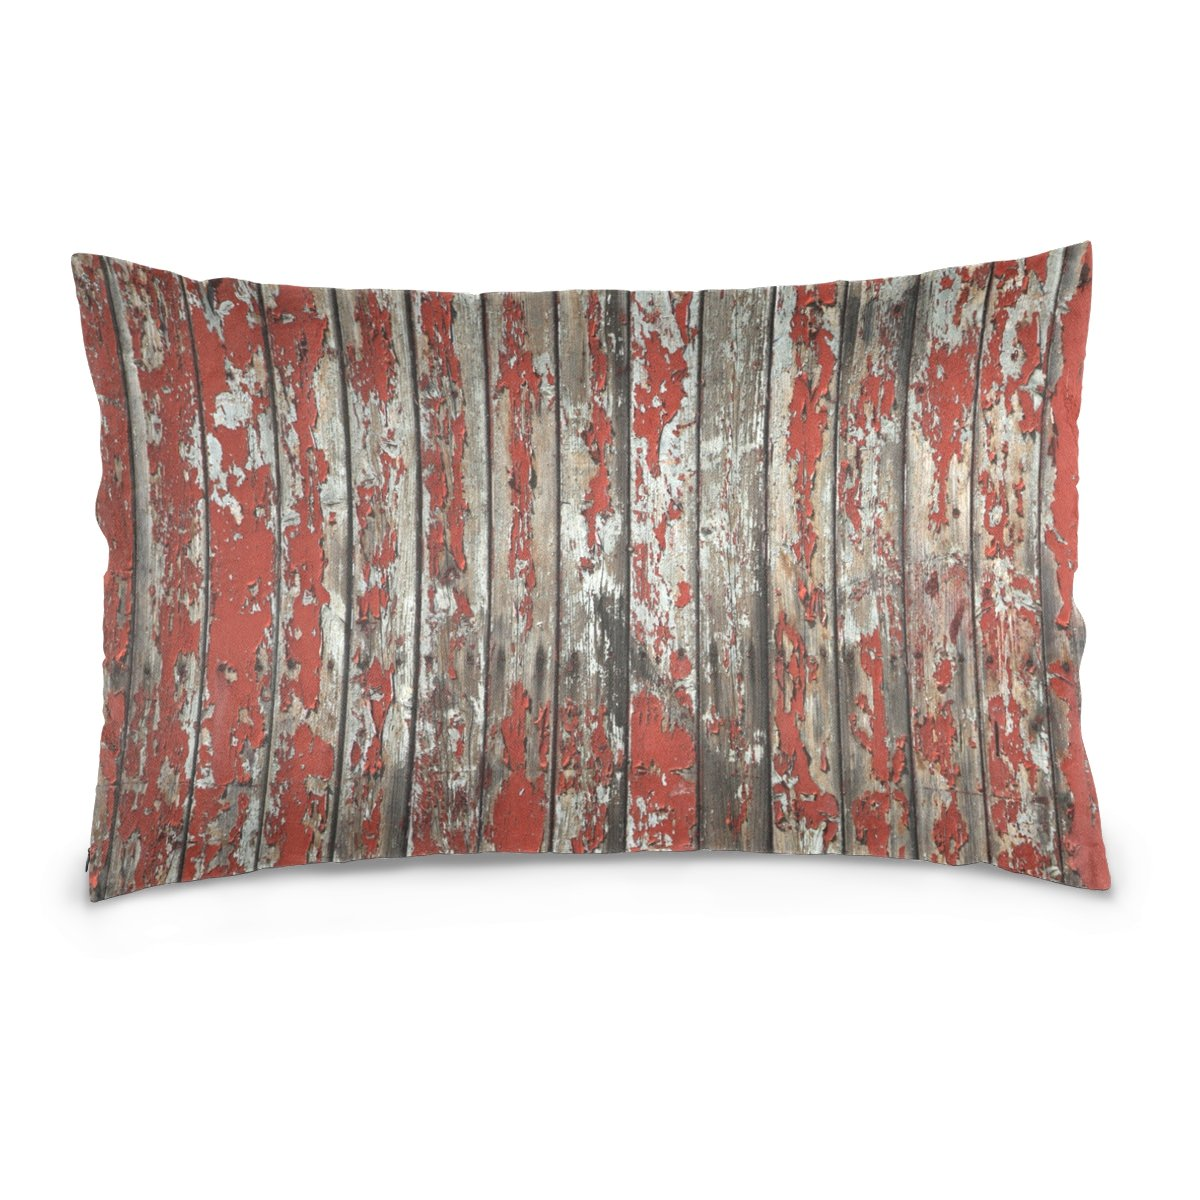 LEISISI Oil Paint Rustic Old Barn Wood pillowcase 20x26 inch two sides custom zippered pillow cover cases